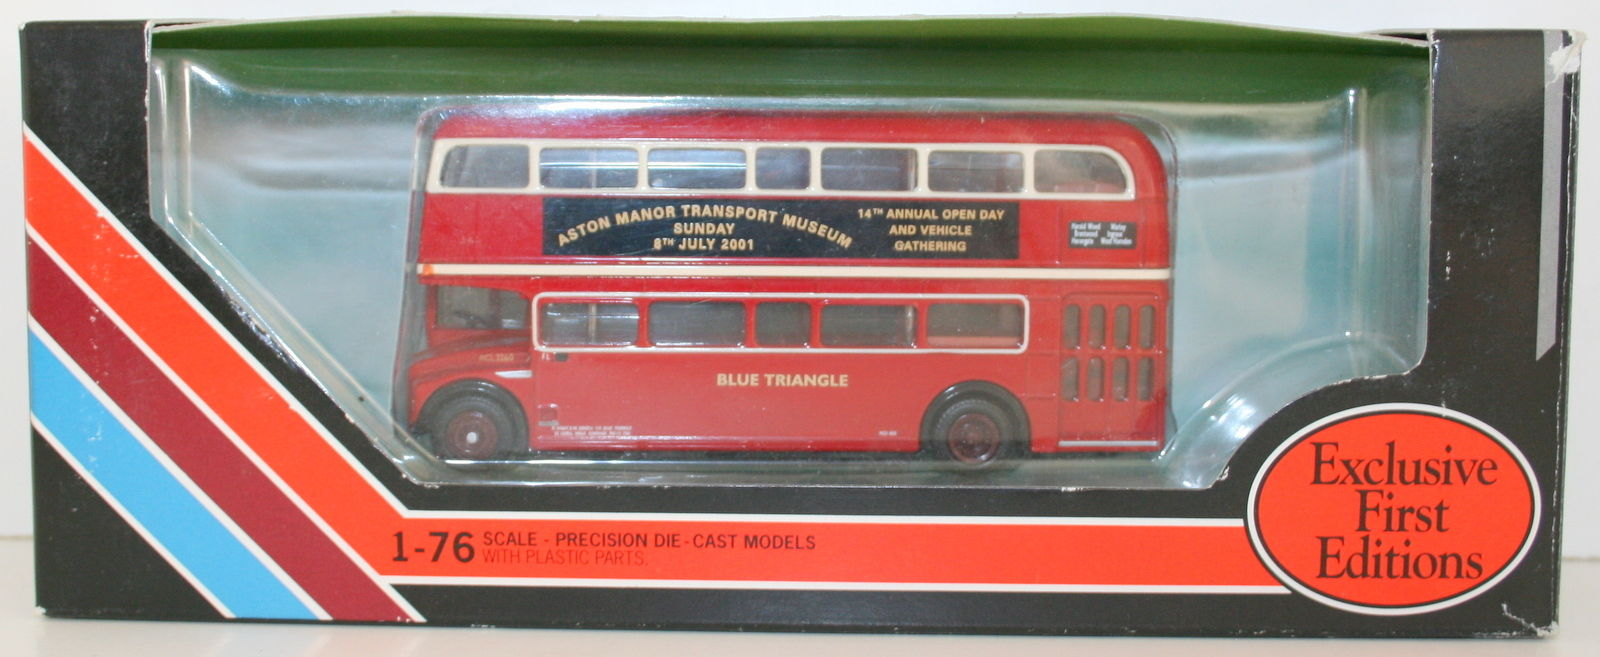 EFE 1/76 - ASTON MANOR TRANSPORT MUSEUM RCL ROUTEMASTER AM3